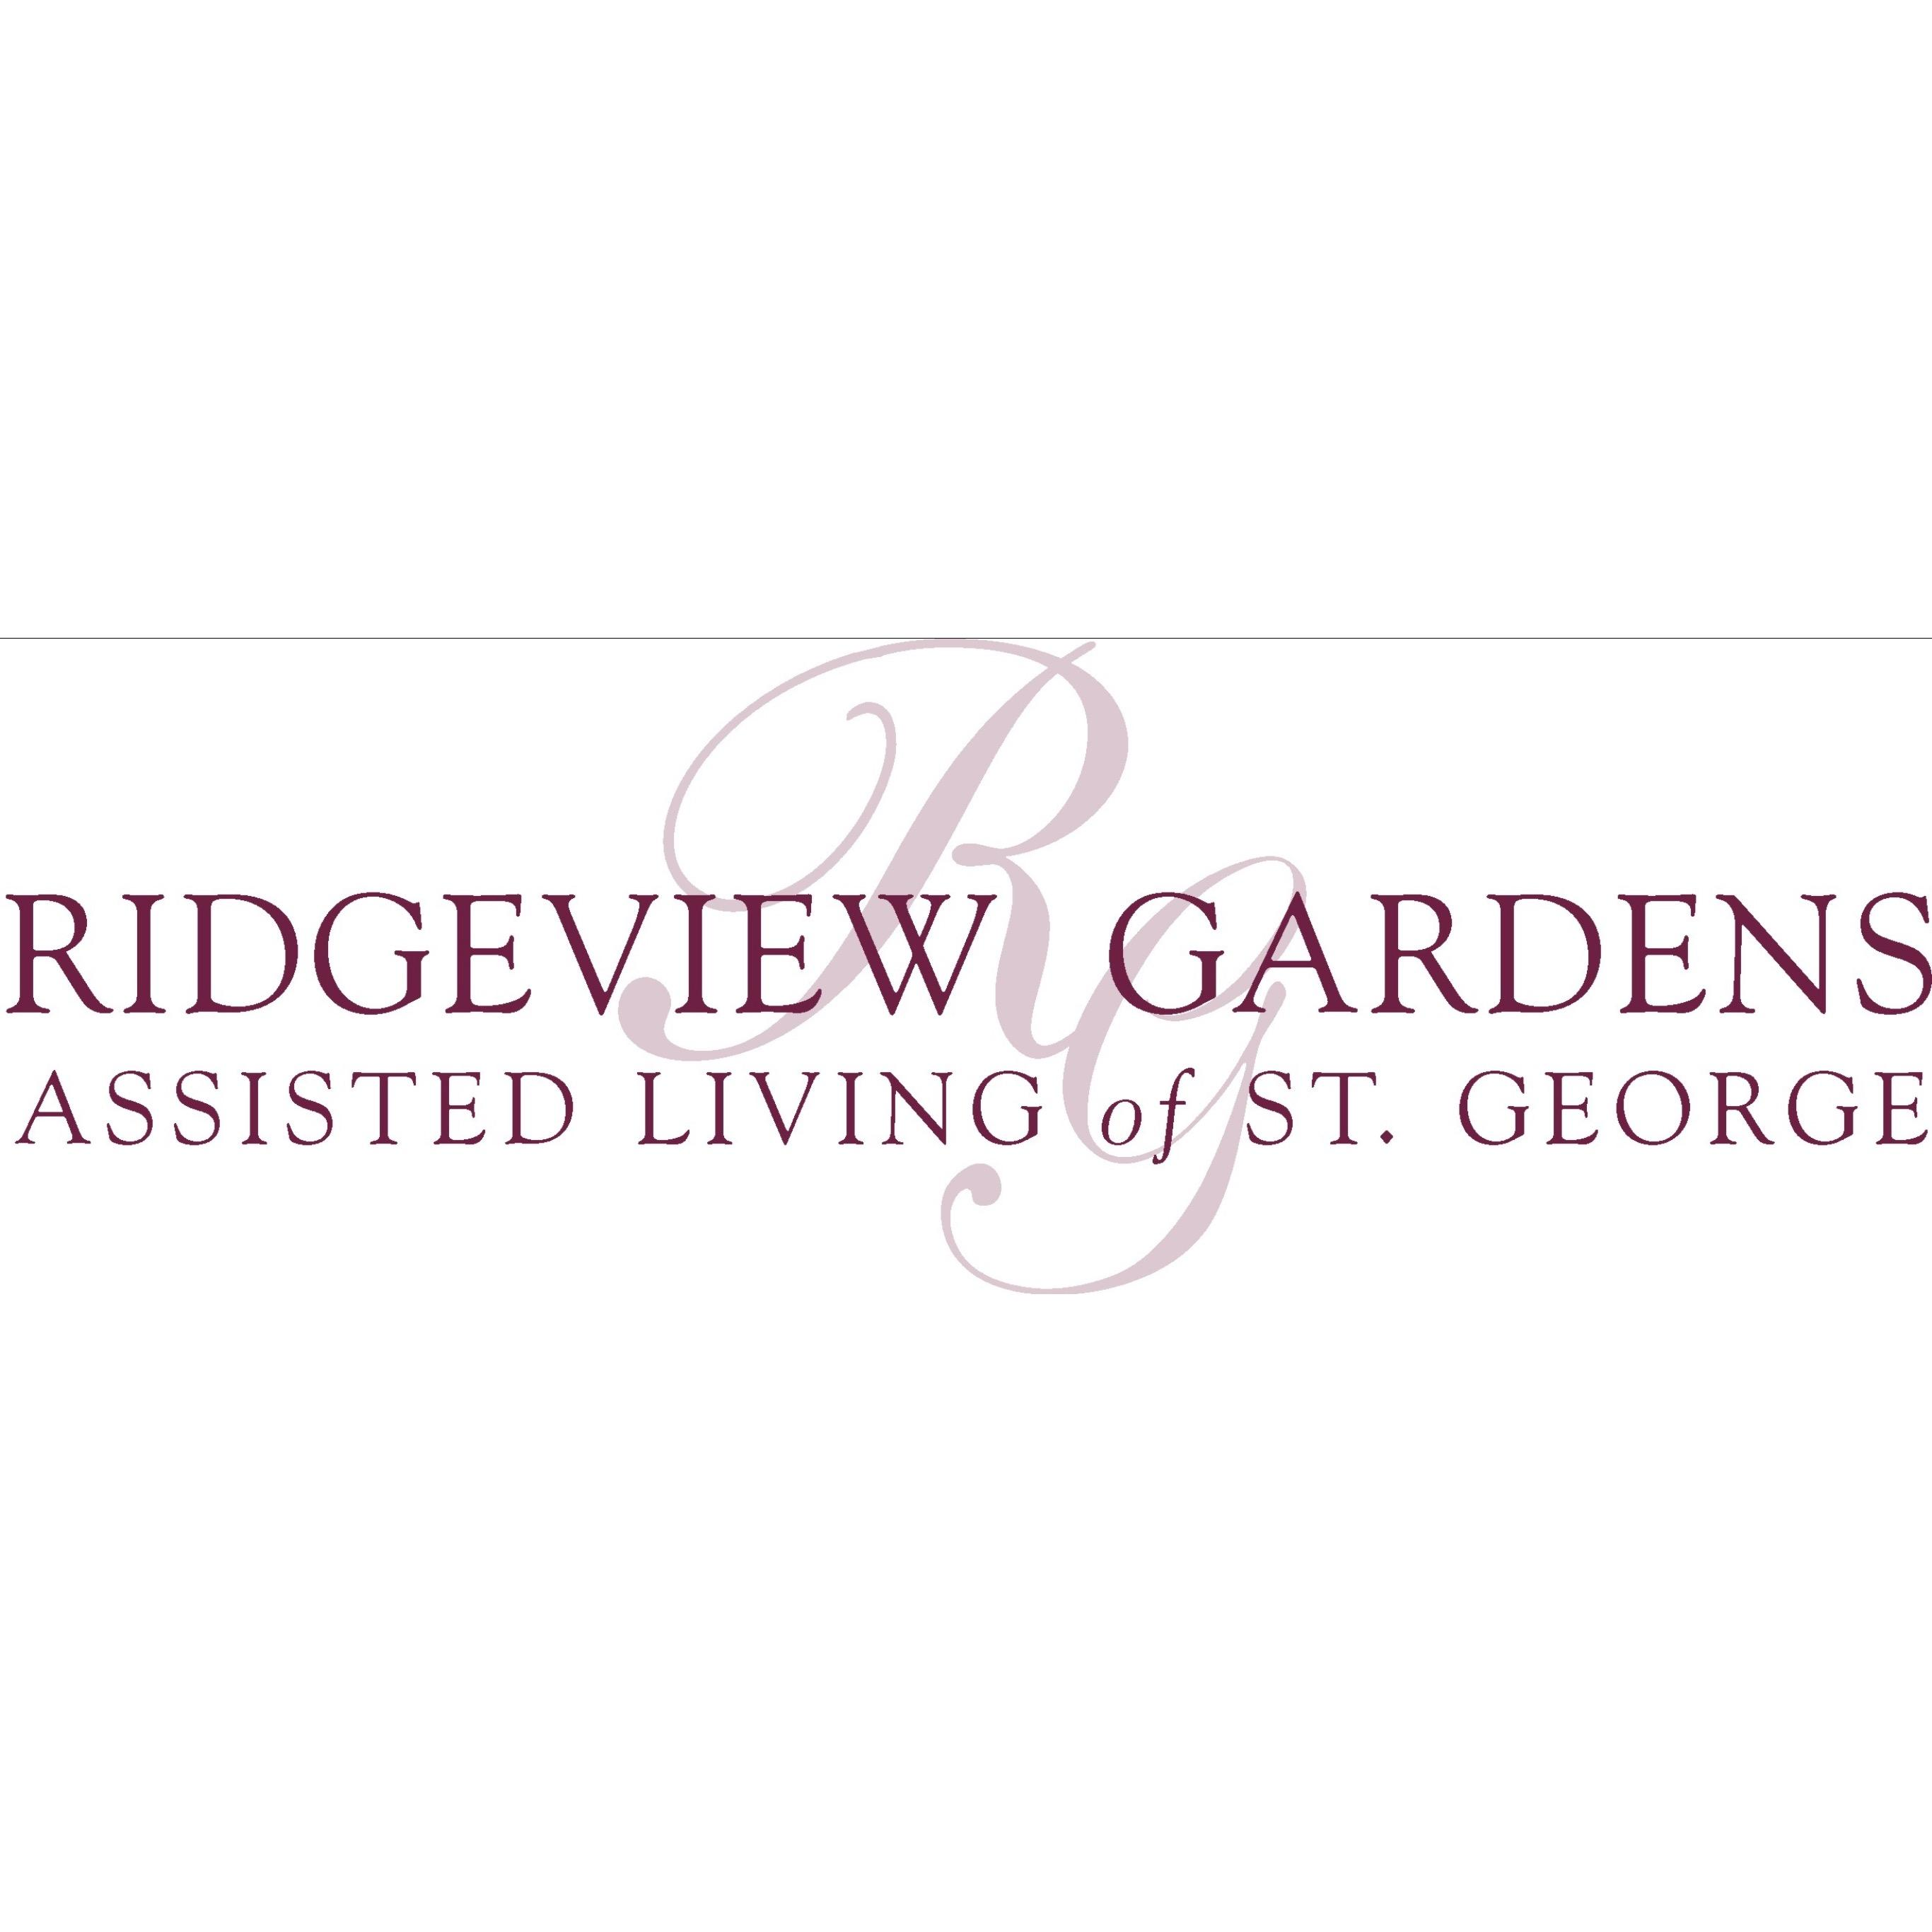 Ridgeview Gardens Assisted Living